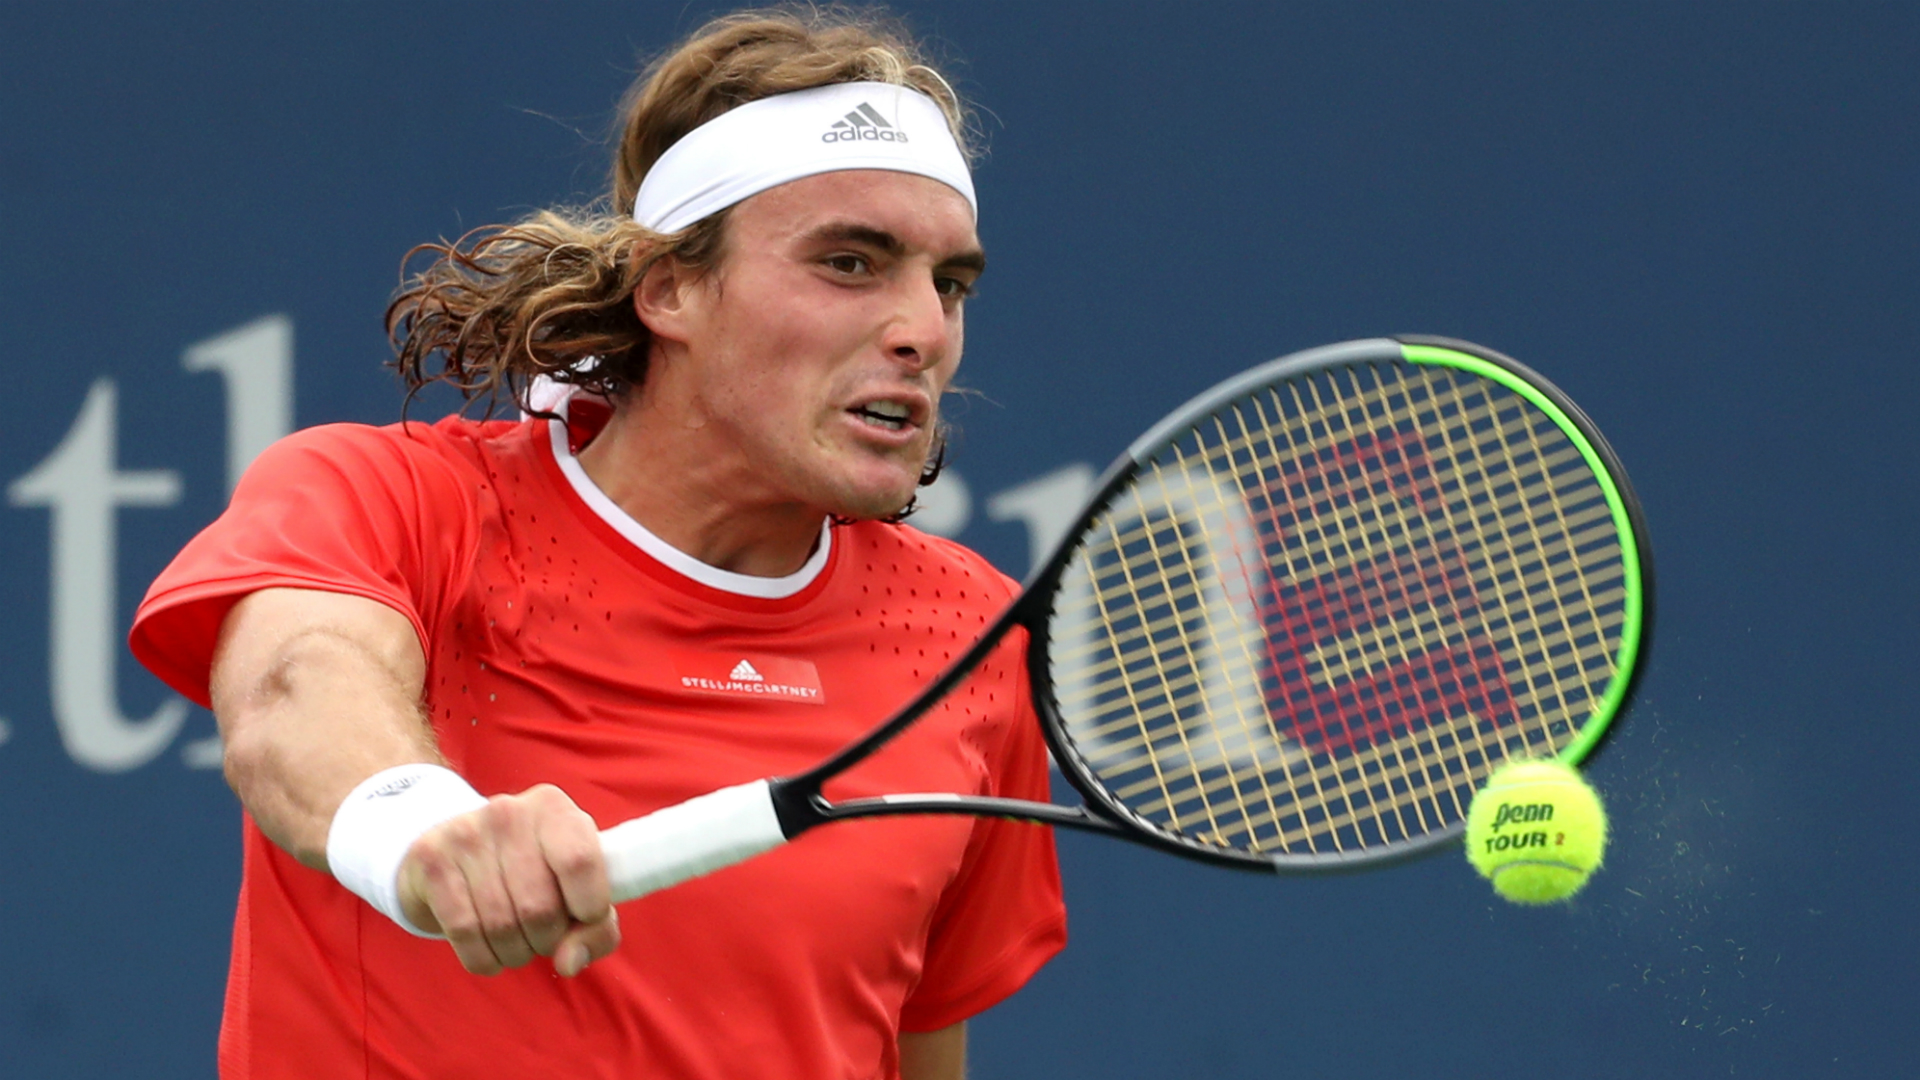 Stefanos Tsitsipas was sent packing following a shock defeat to Jan-Lennard Struff, while Alexander Zverev joined him out the door.